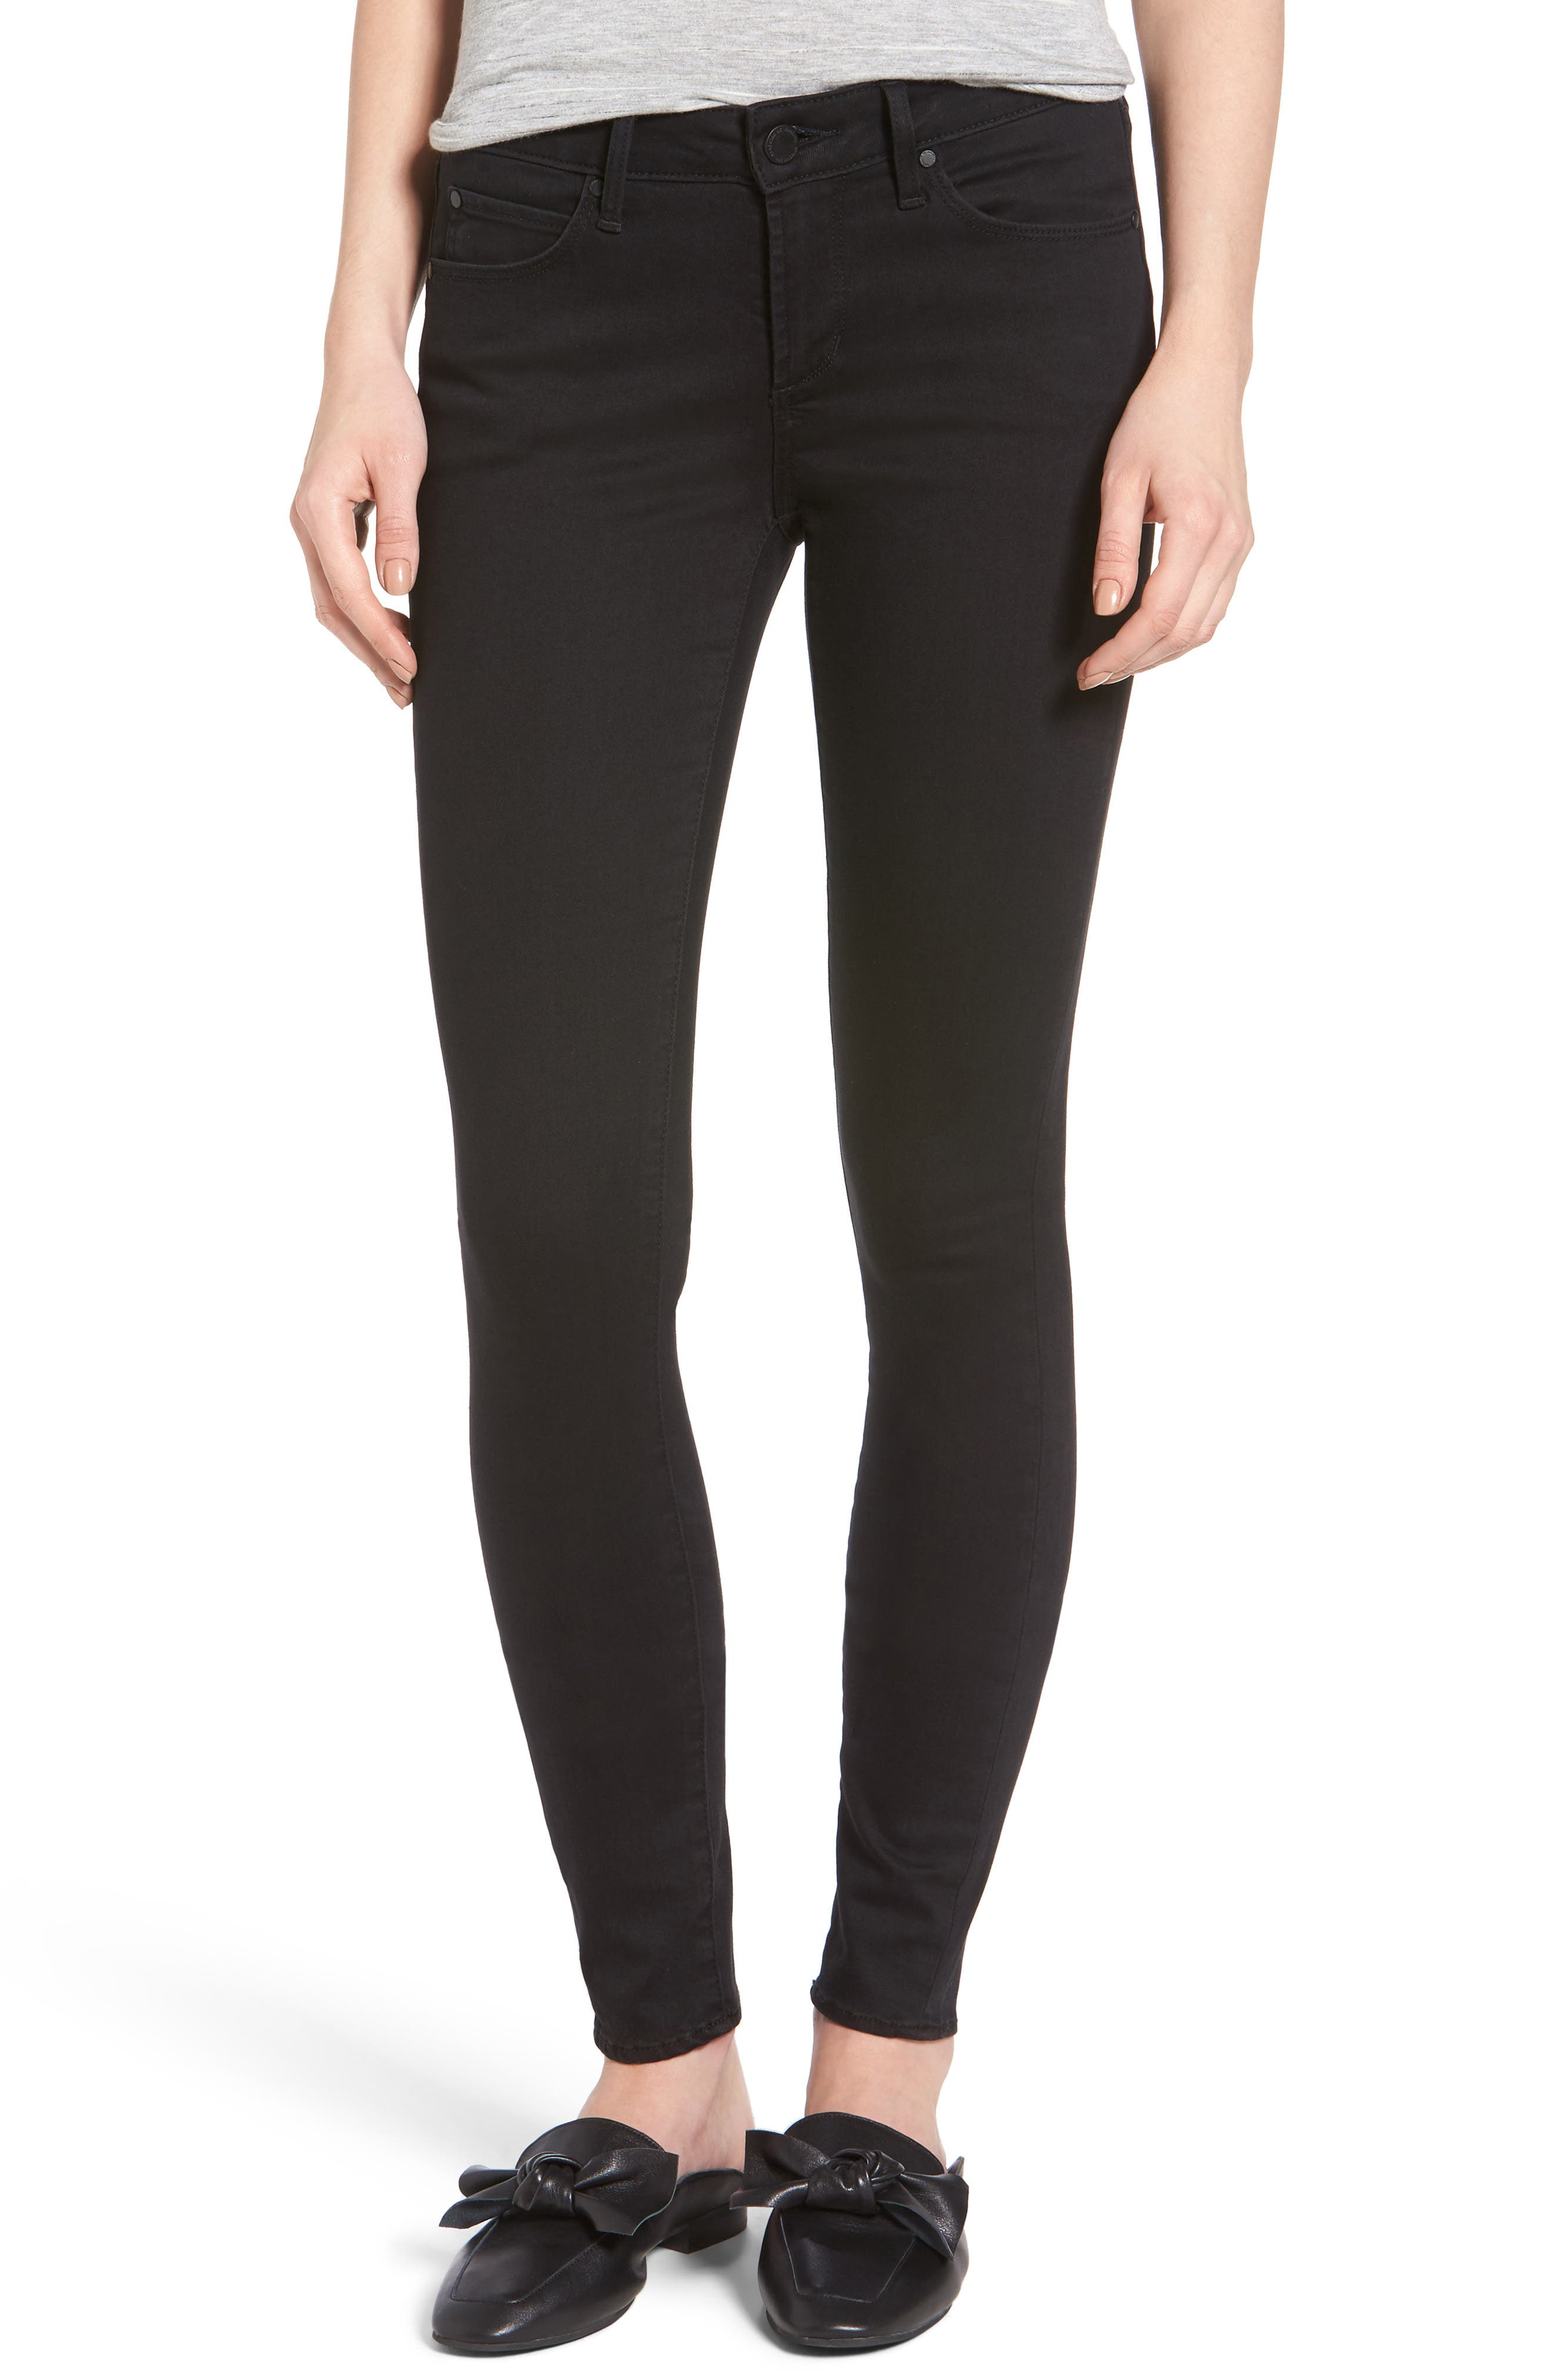 Alternate Image 1 Selected - Articles of Society Mya Ankle Skinny Jeans (Blackhawk)